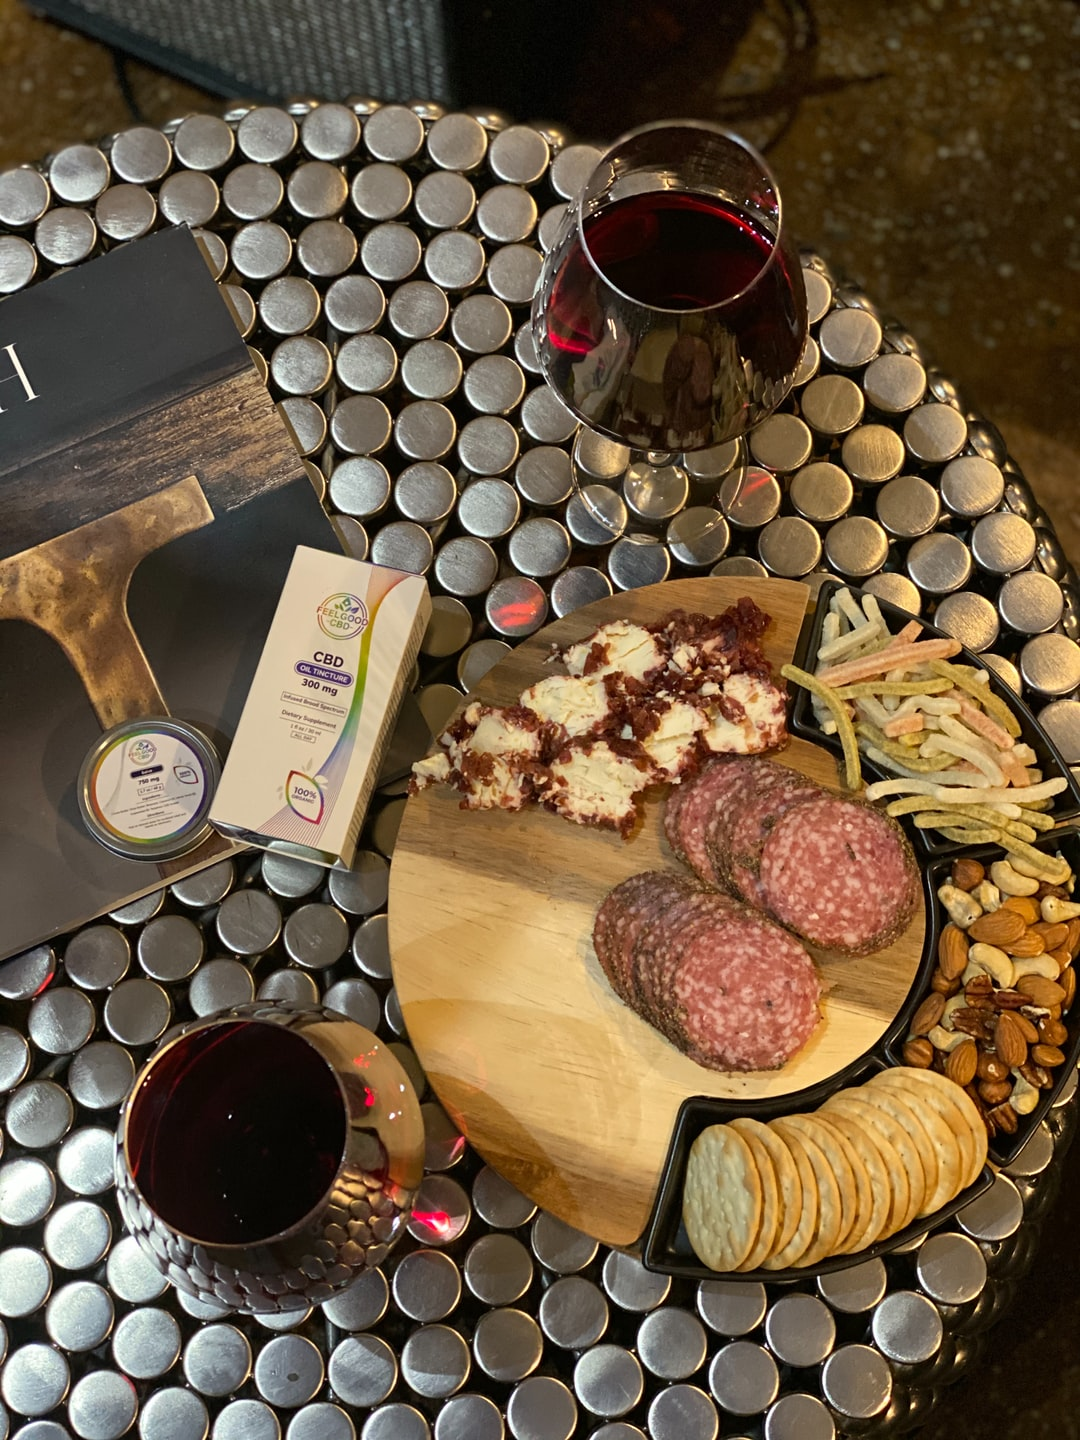 Coffee Table with wine, CBD oil, and a plate of assorted meats, cheeses, crackers, and nuts.